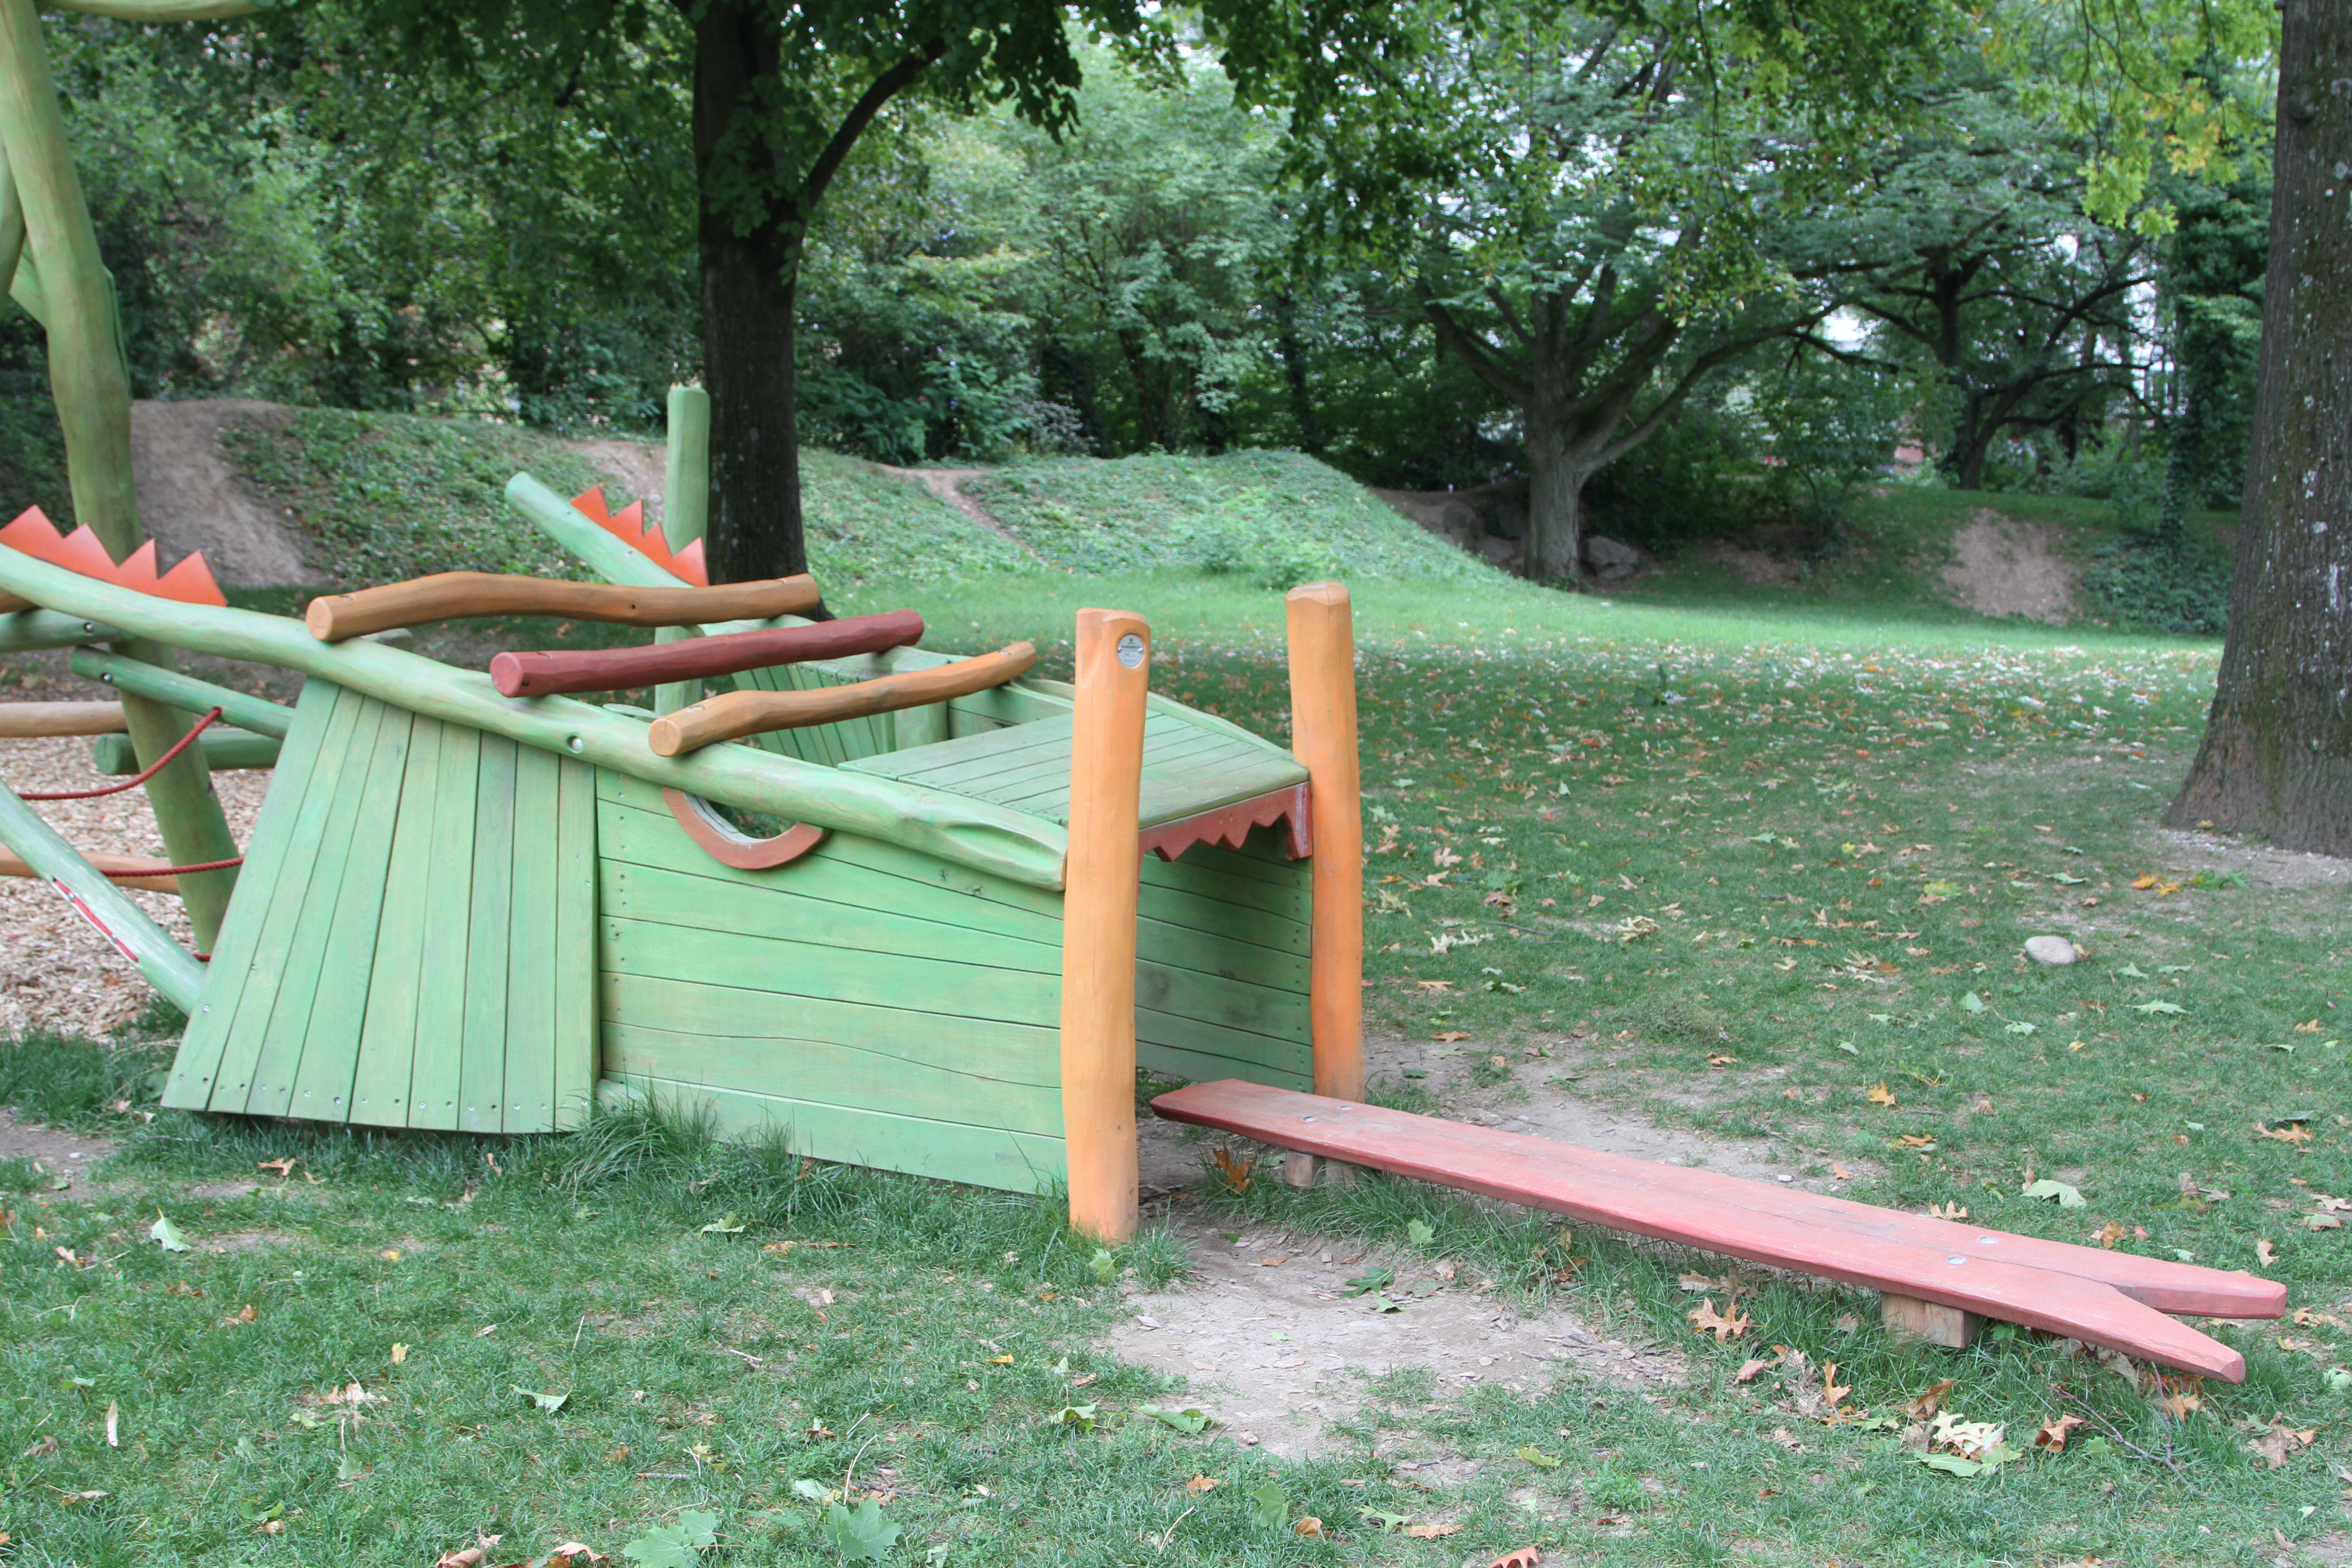 A wooden play structure, painted green, yellow and brown. In the background, grass and trees.